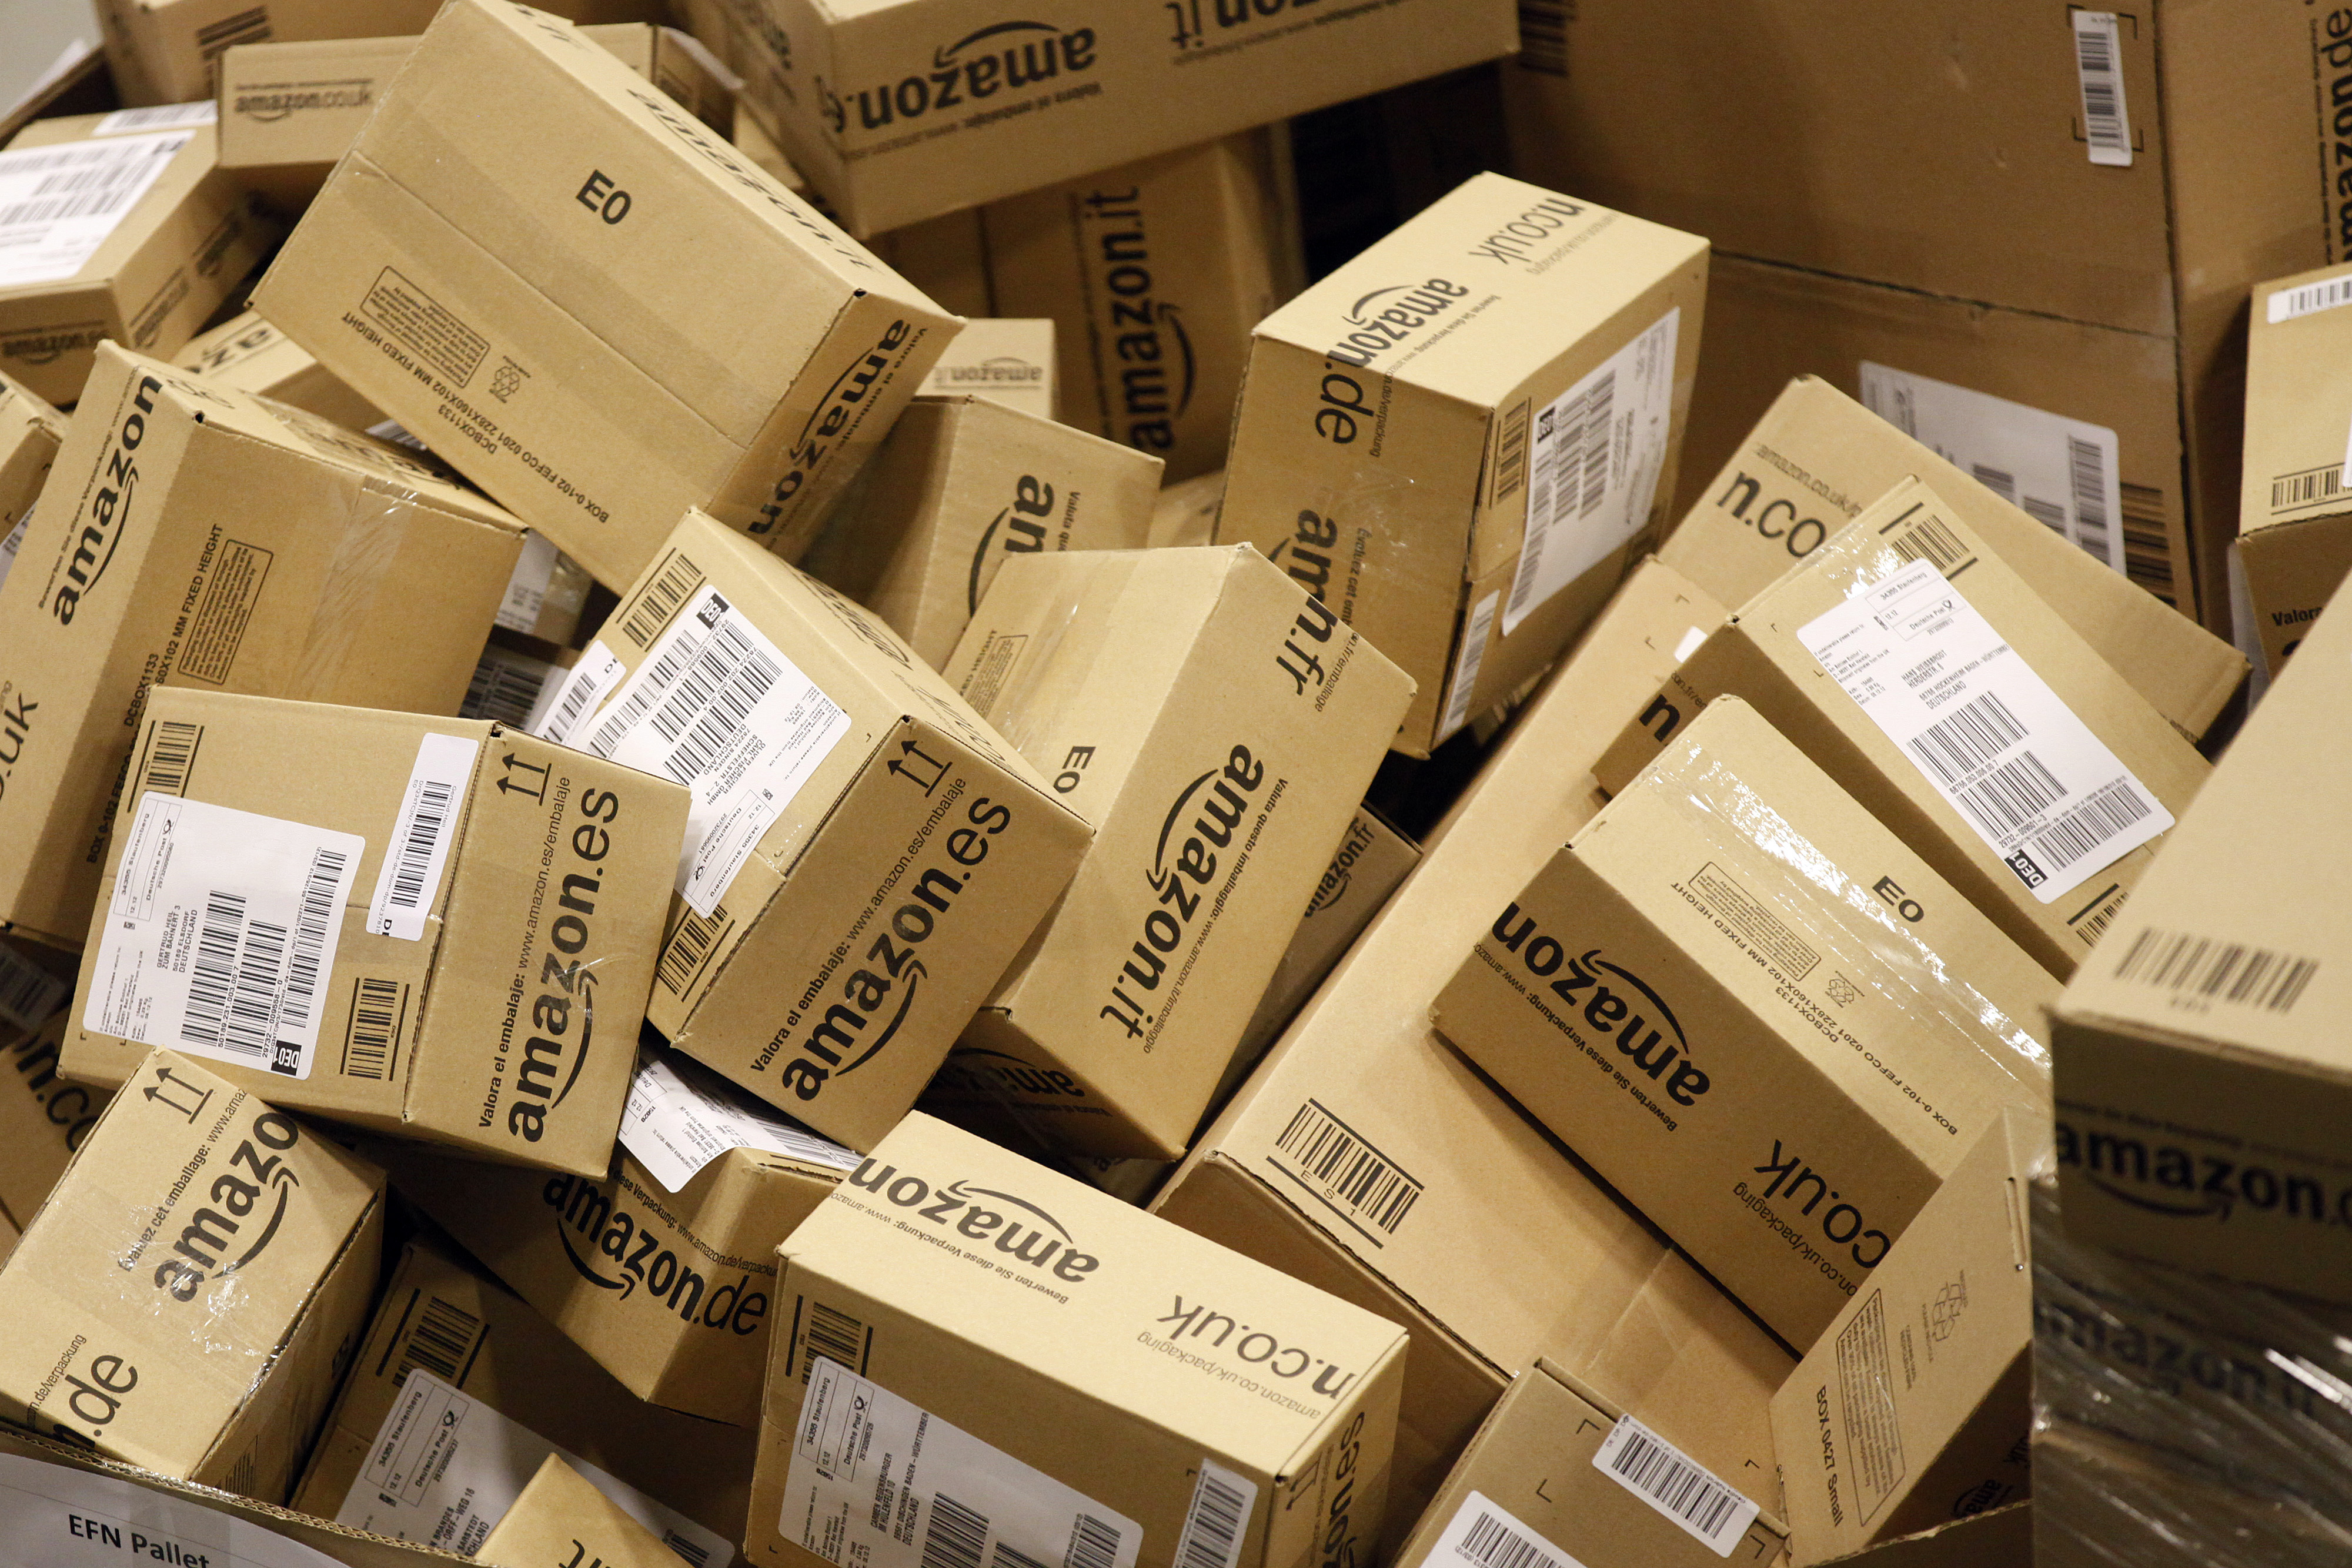 Best-bets for Feb. 18: Endless Amazon, headless Marie